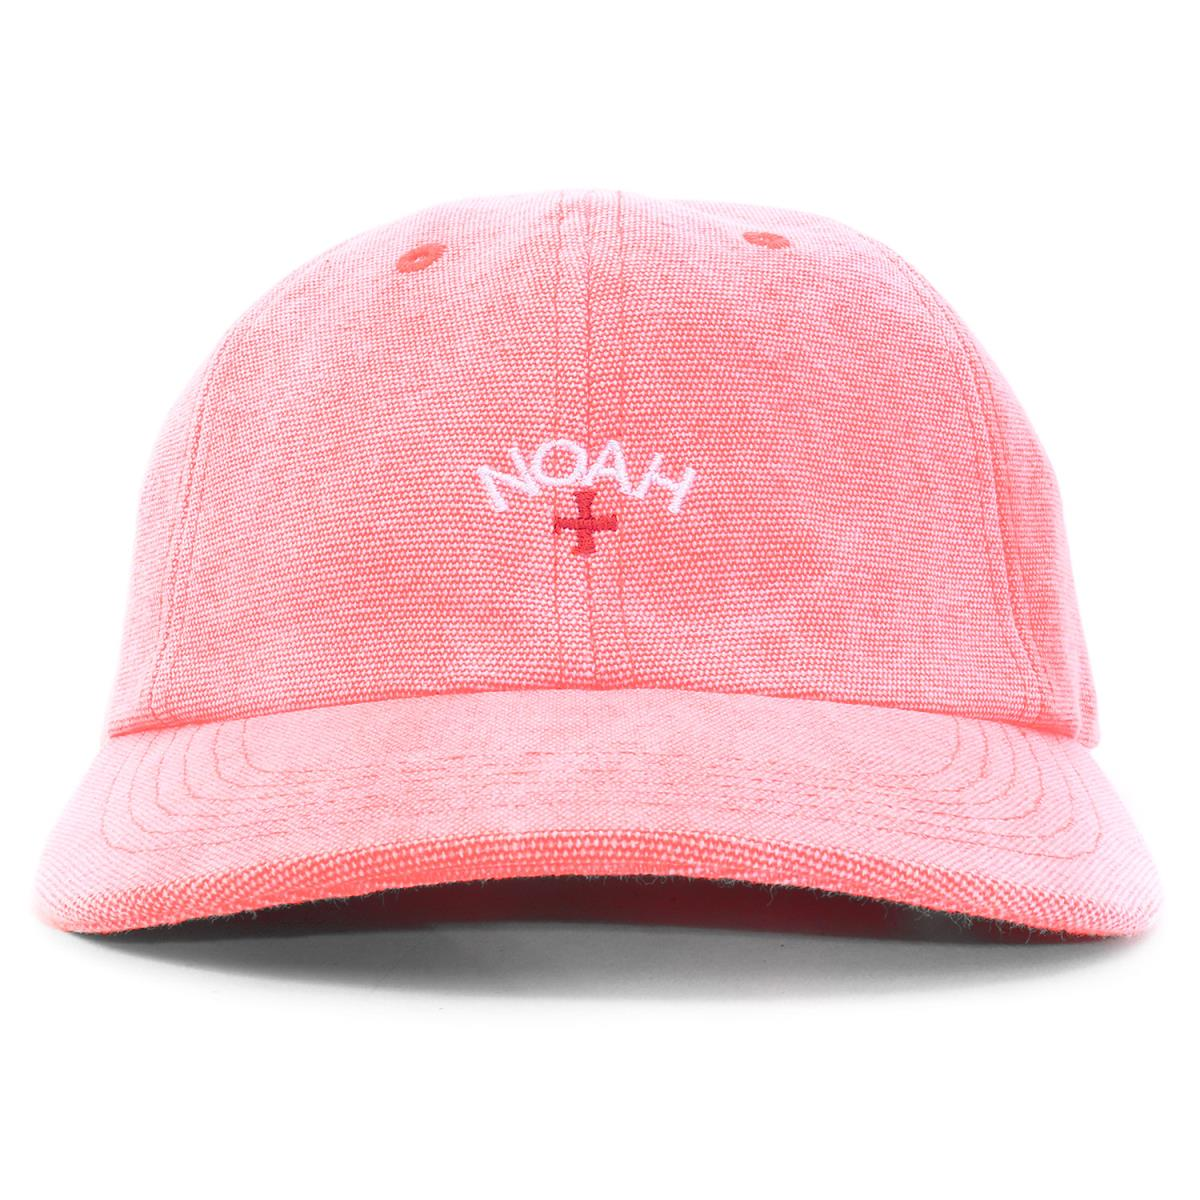 6230e4f88d0 NOAH (Noah) brand logo embroidery 6 panel cap (Canvas 6 Panel Cap) Coral